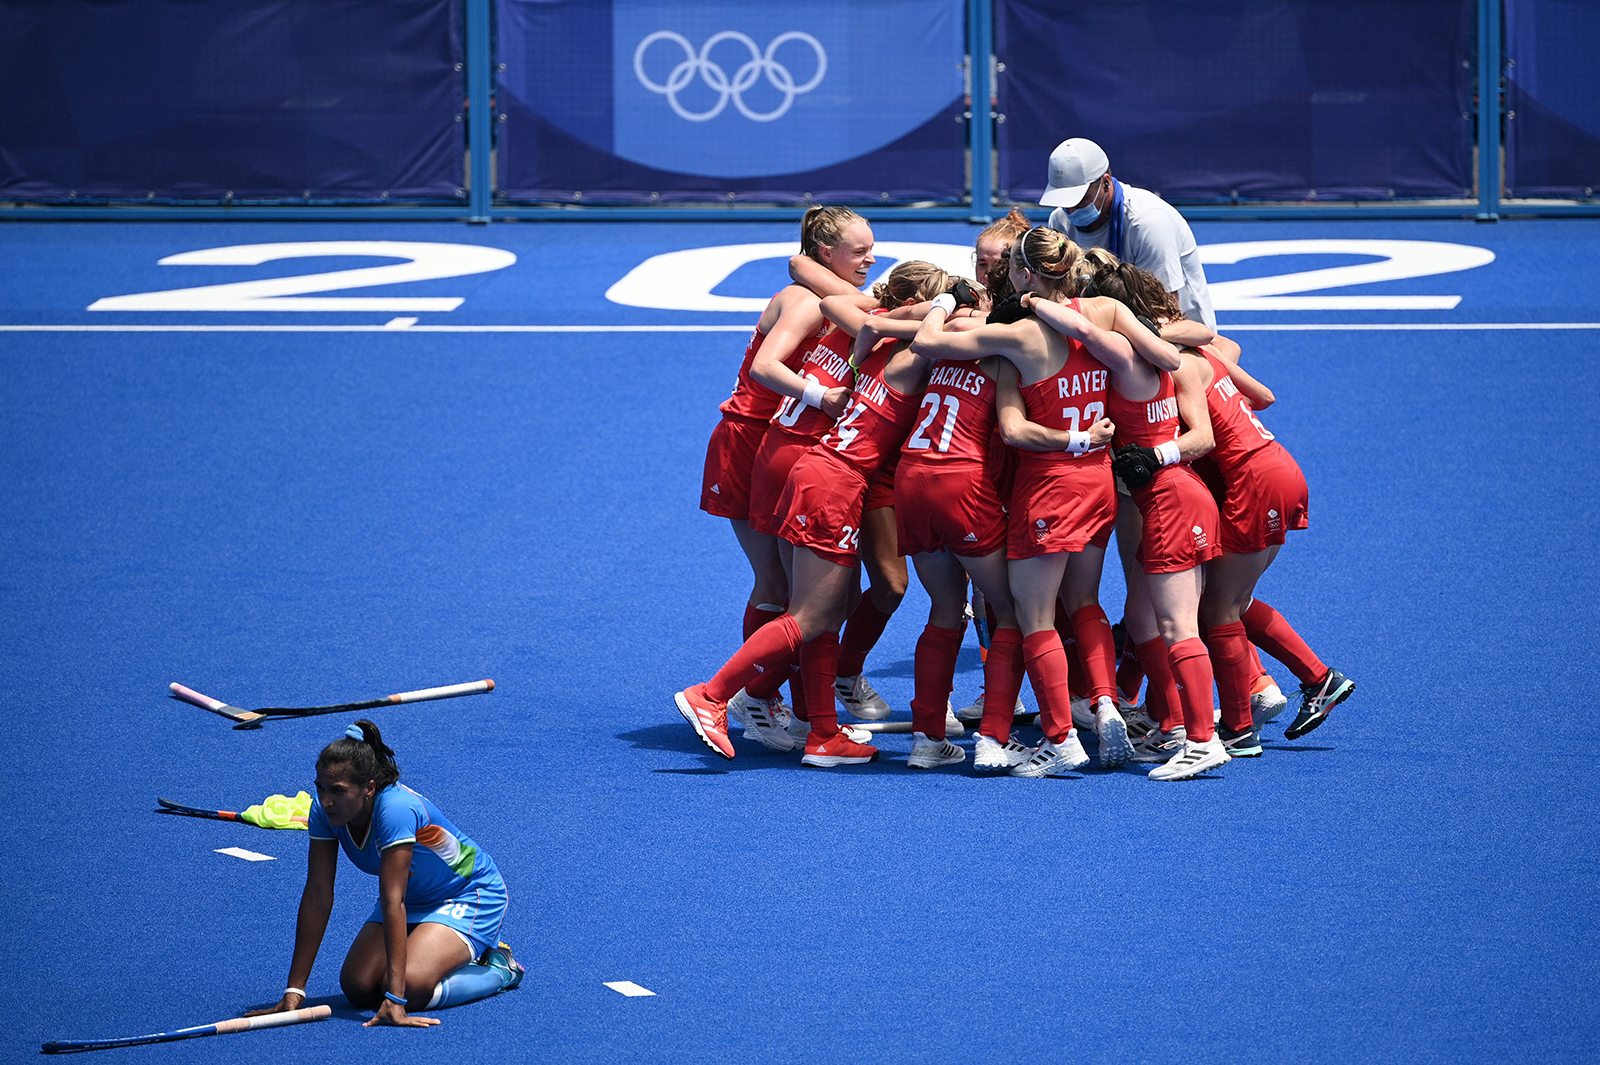 Great Britain's field hockey team celebrates after winning the women's bronze medal match by defeating India 4-3 on Friday.